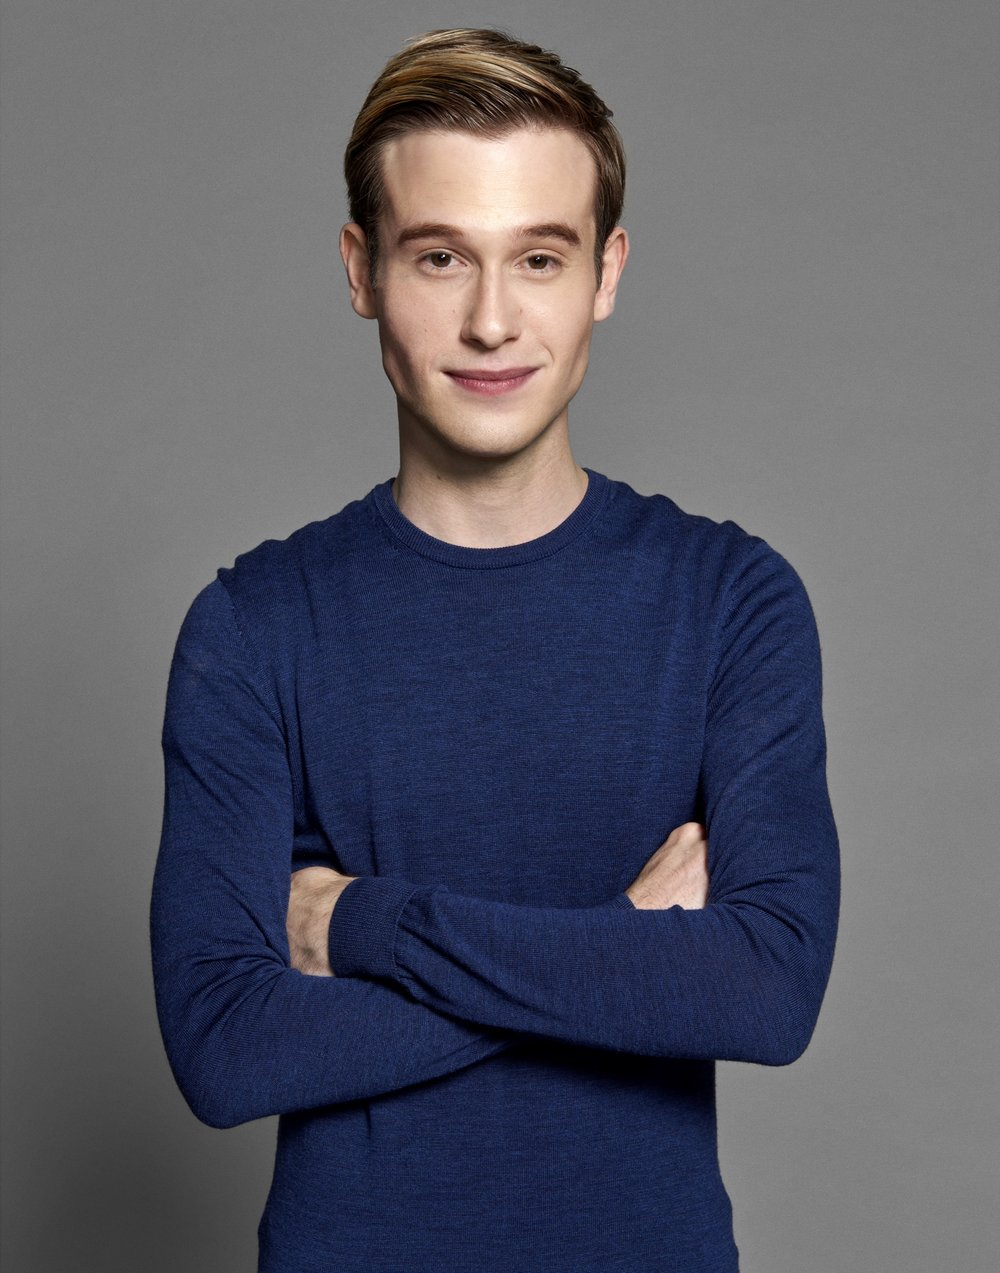 Copy of TylerHenry_04_0194_C.jpg